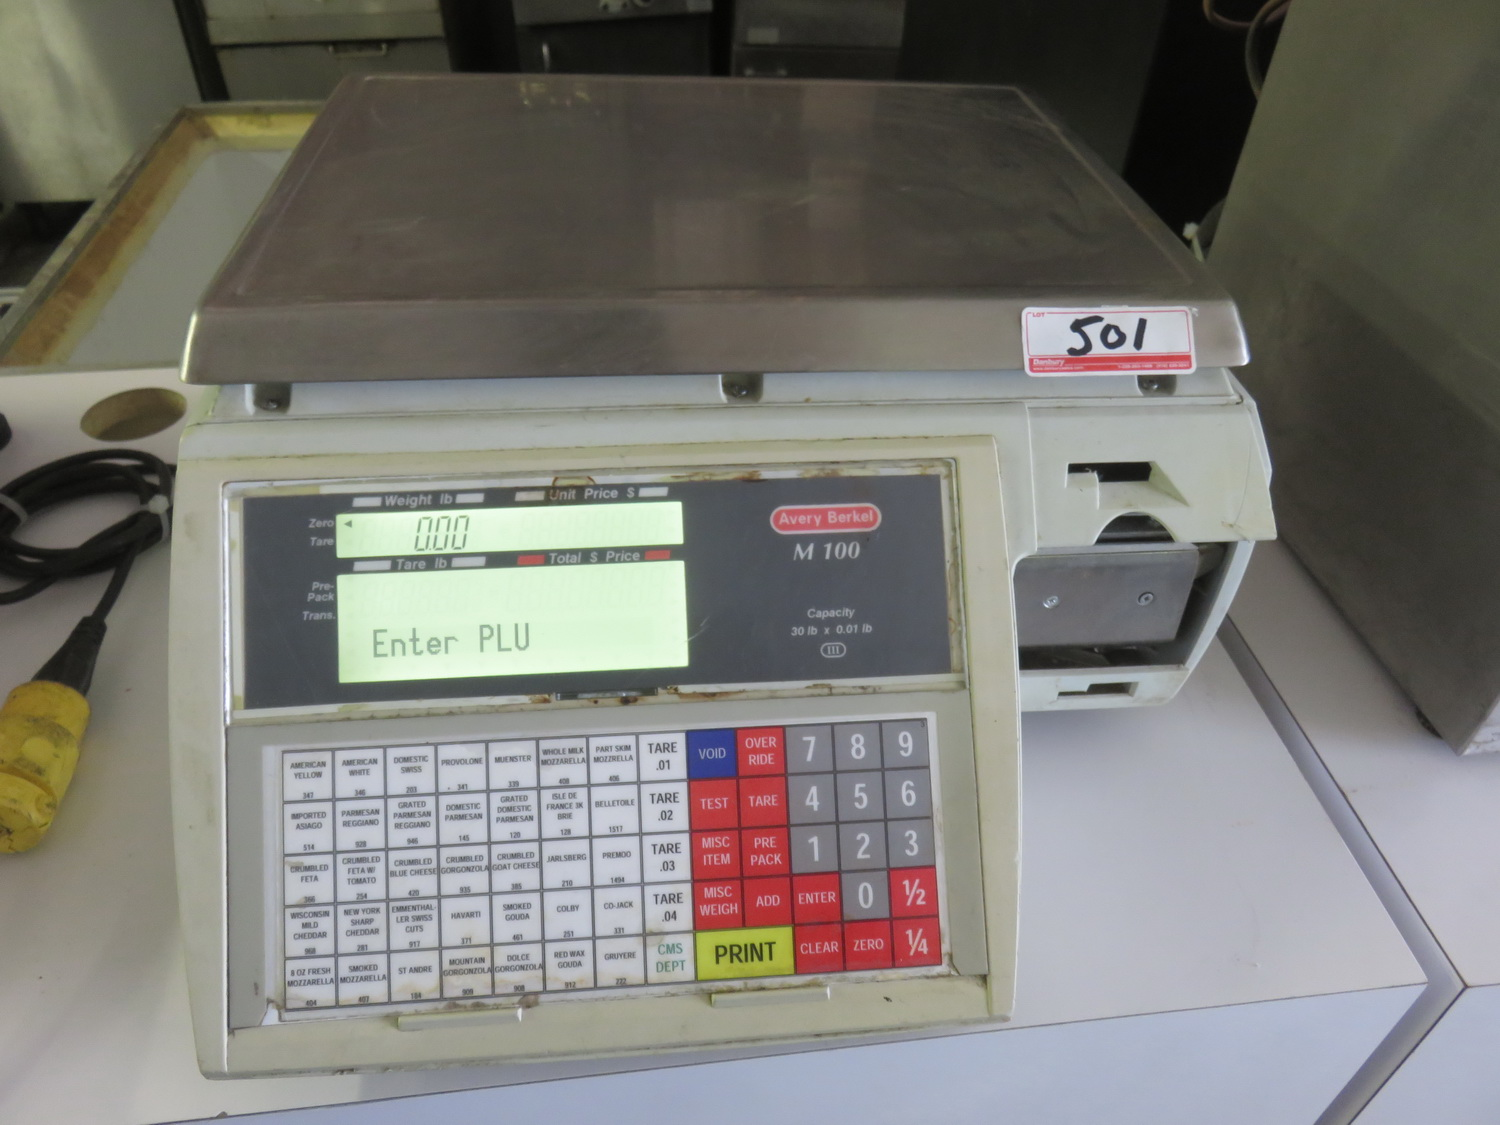 "Lot 501 - AVERY BERKEL MOD M-100, 30LB X 0.01LB CAPACITY 12"" X 15"" DIGITAL PRINT OUT SCALE - S/N 05030462"